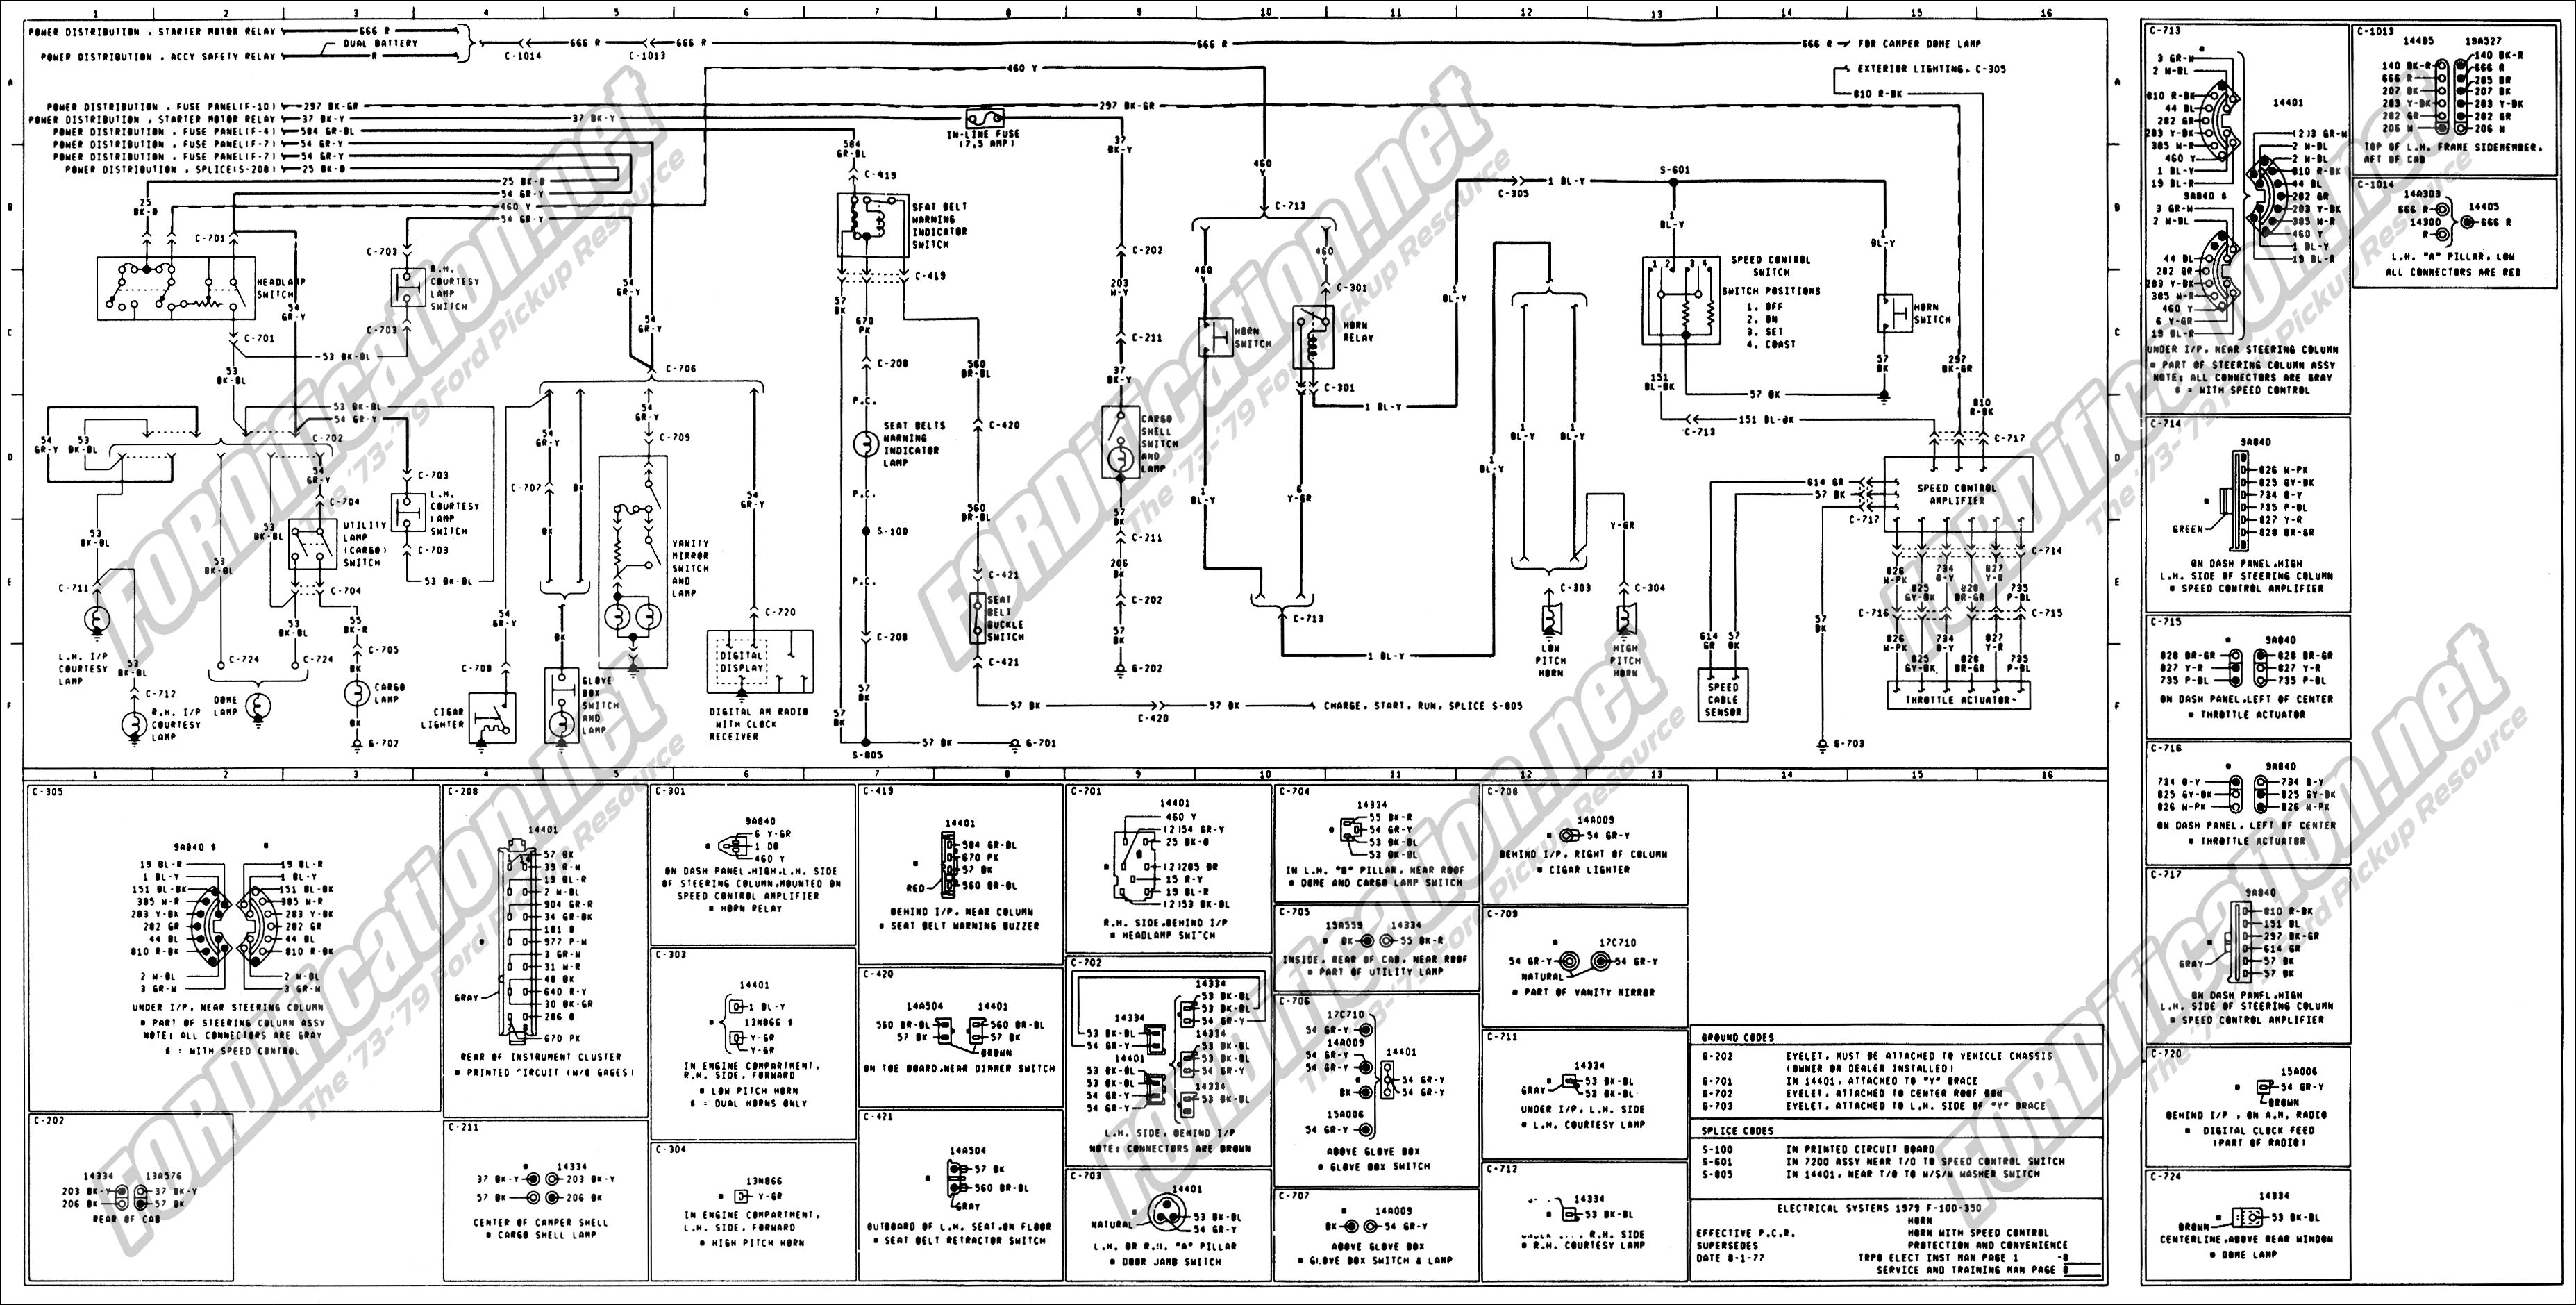 wiring_79master_8of9 1976 ford f150 wiring diagram 1979 ford truck wiring harness ford truck wiring diagrams free at edmiracle.co